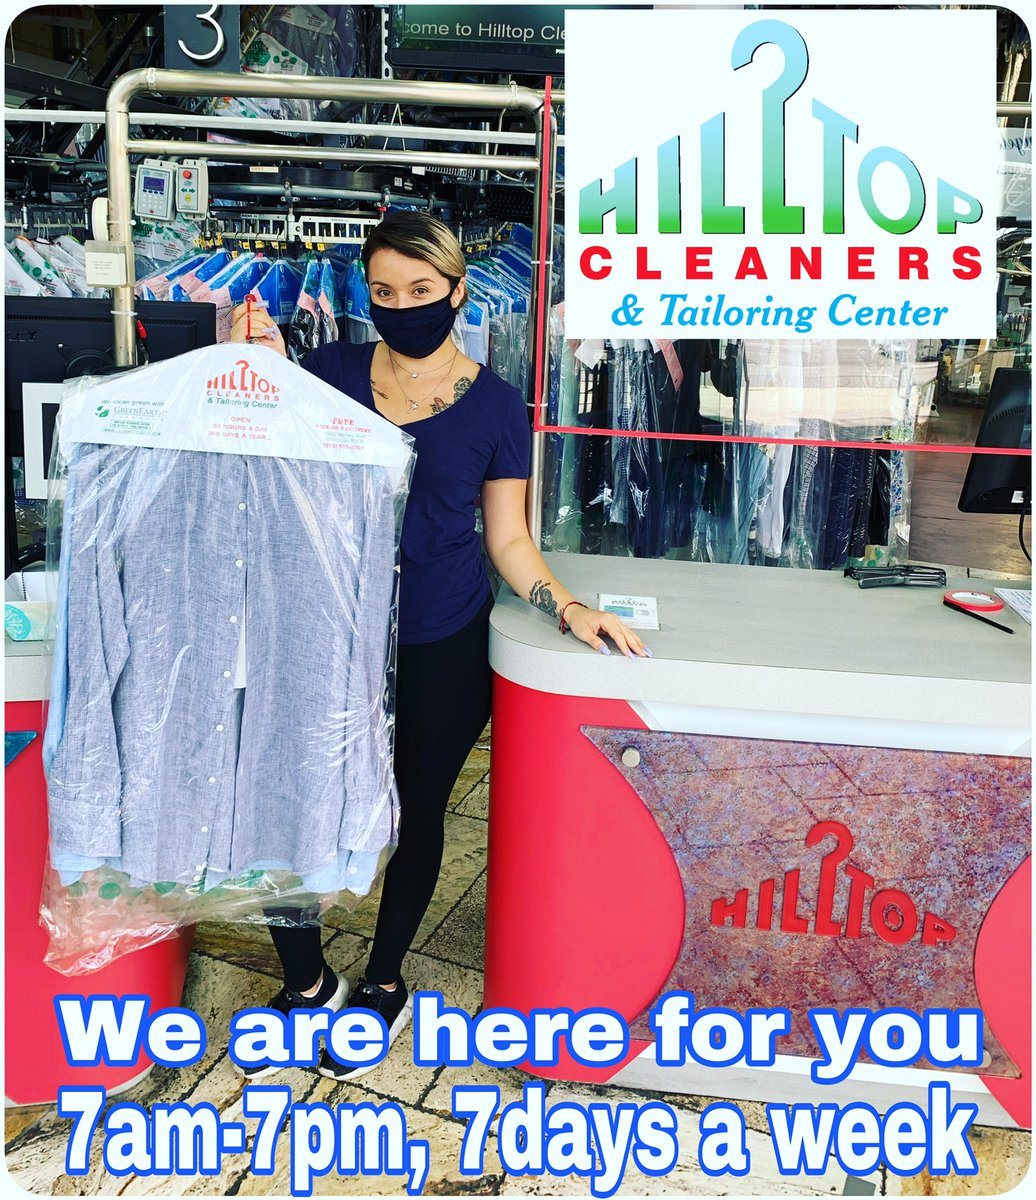 Come on in!! We are still open for business, 7am-7pm, 7 Days a week. We also have our #Tailors on site from 10am-3pm 7 days a week. We are here for all ur #drycleaning needs. We also have free #delivery!! Call us today 818-501-2266 #hilltopcleaners #encino #drycleaners #laundrypic.twitter.com/L4Kxxm0diK